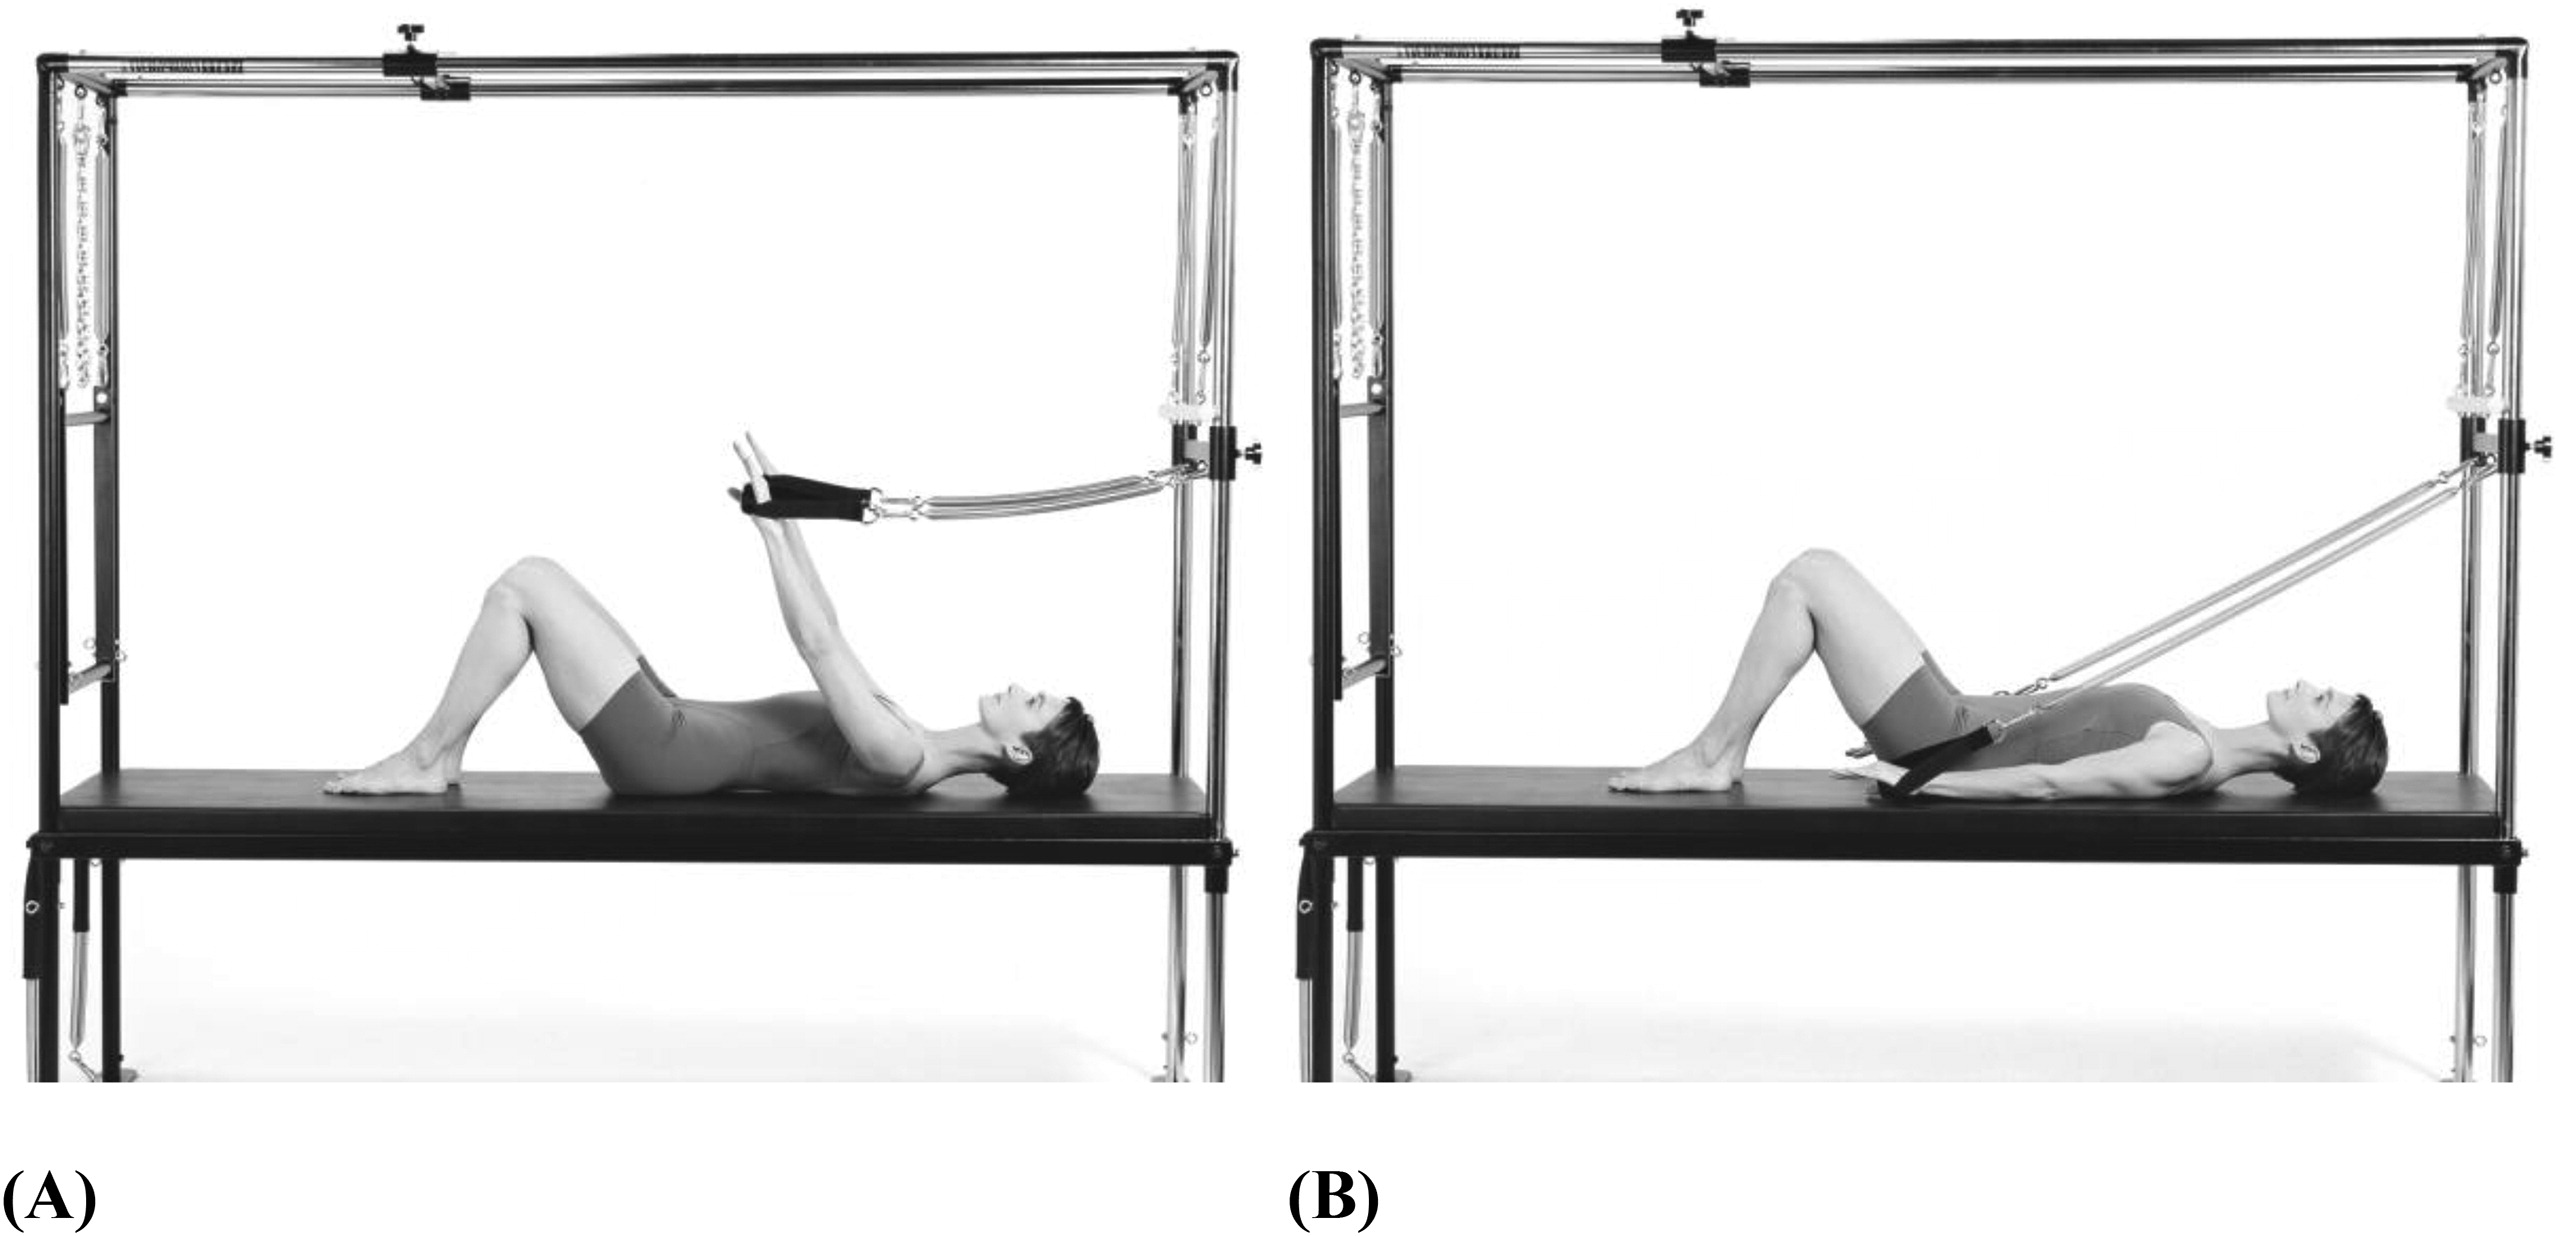 Equipment Based Pilates Reduces Work Related Chronic Low Back Pain And Disability A Pilot Study